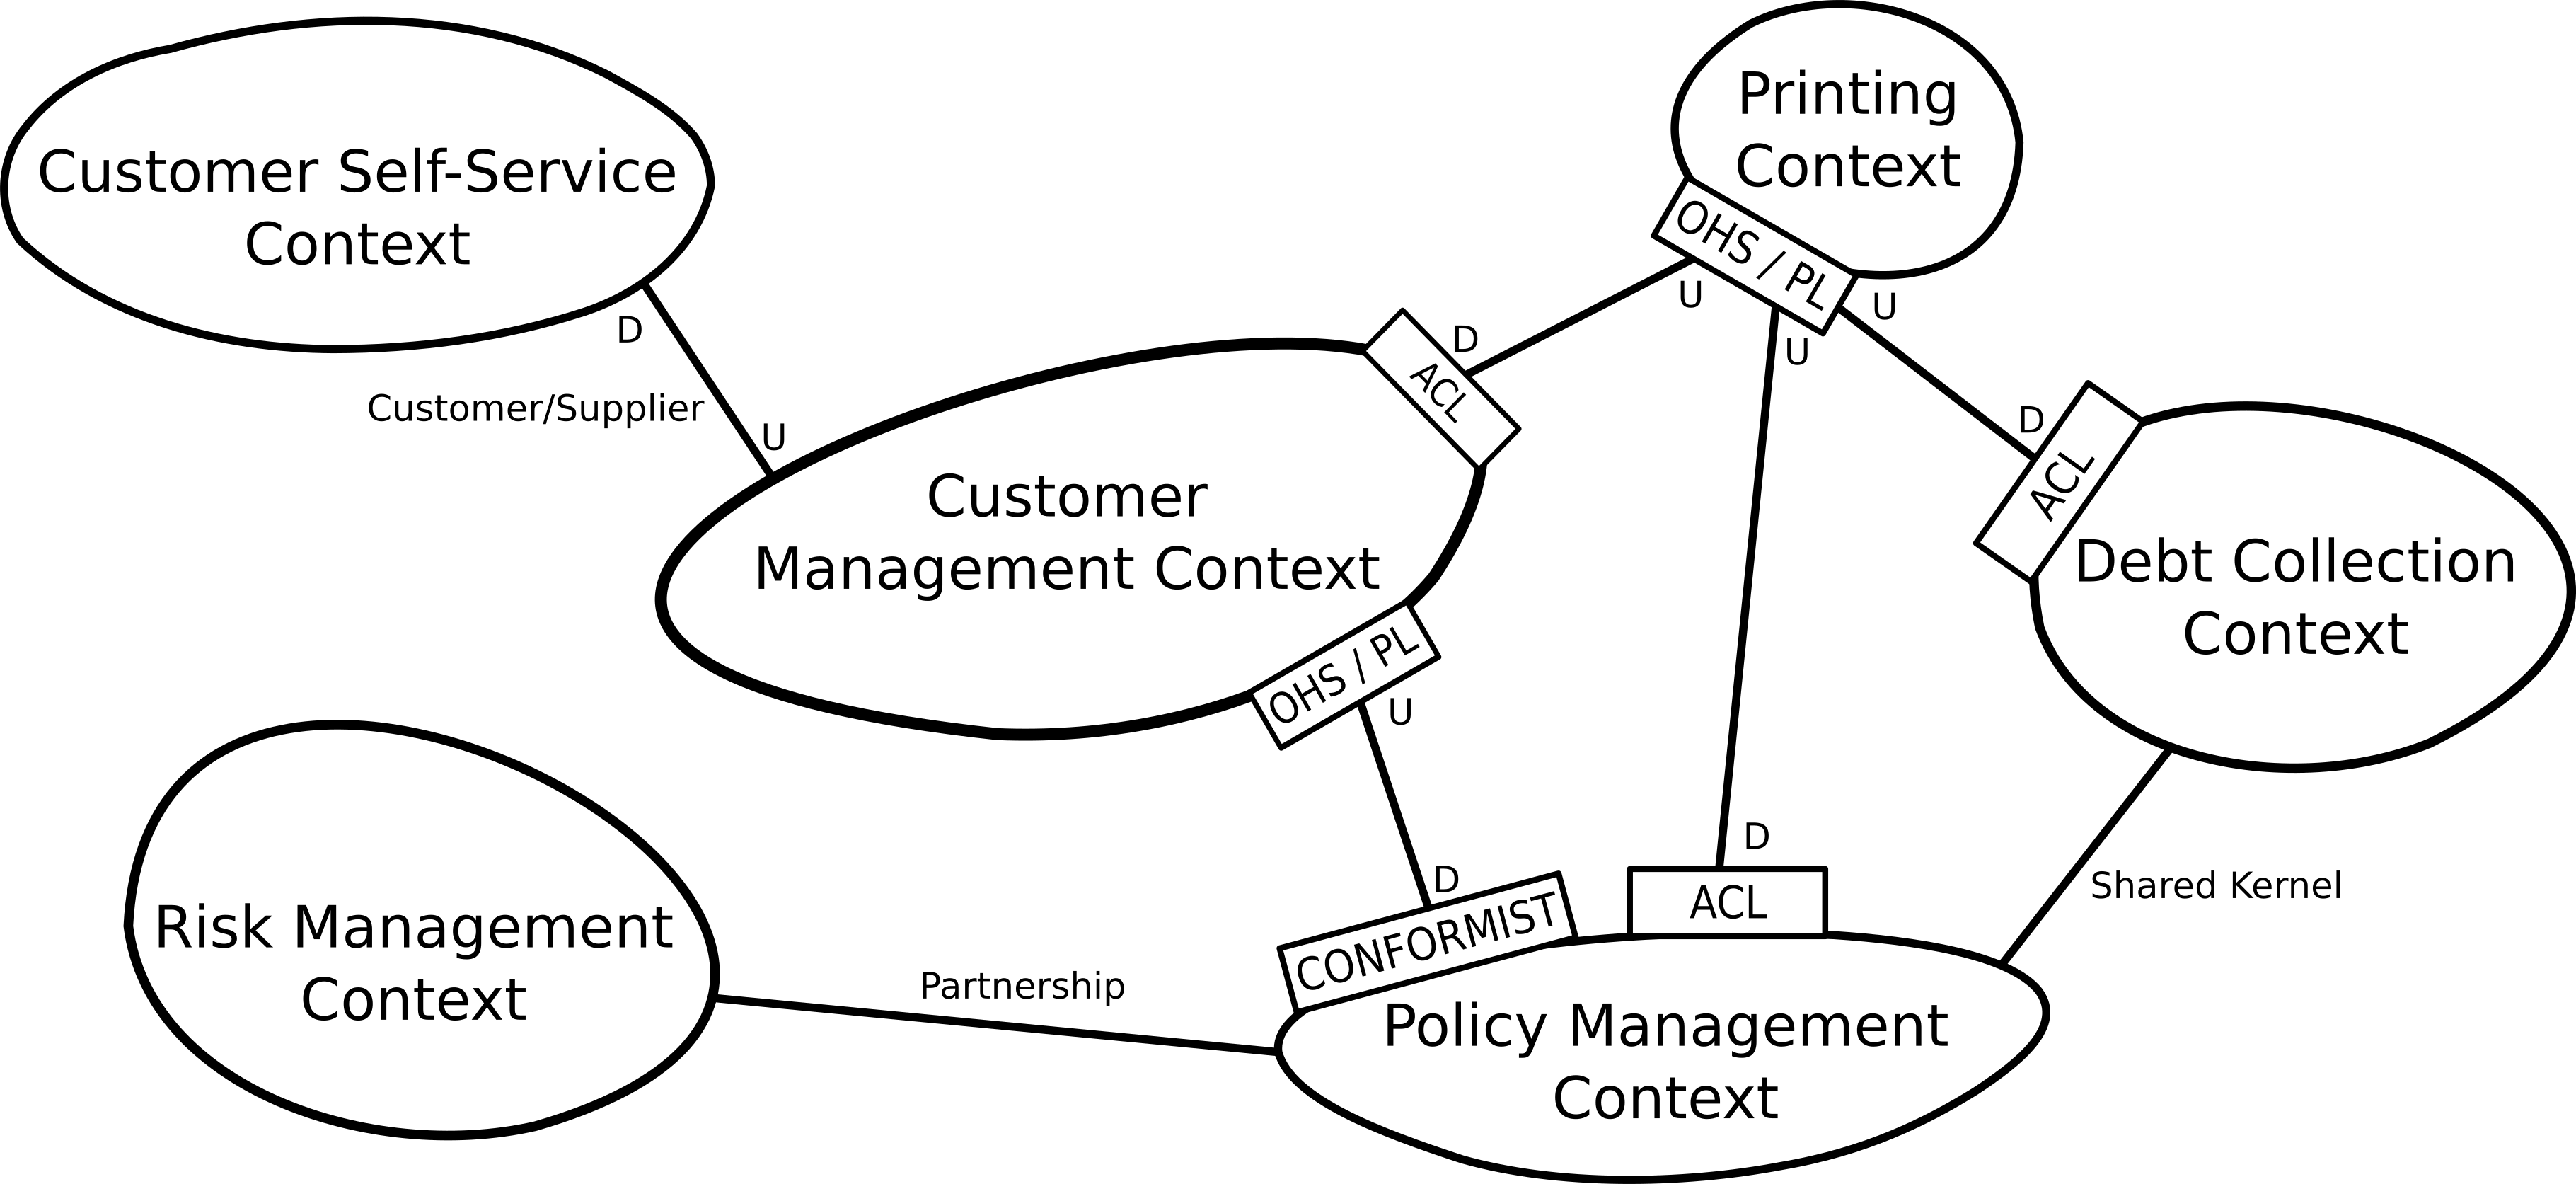 Insurance Company Example Context Map